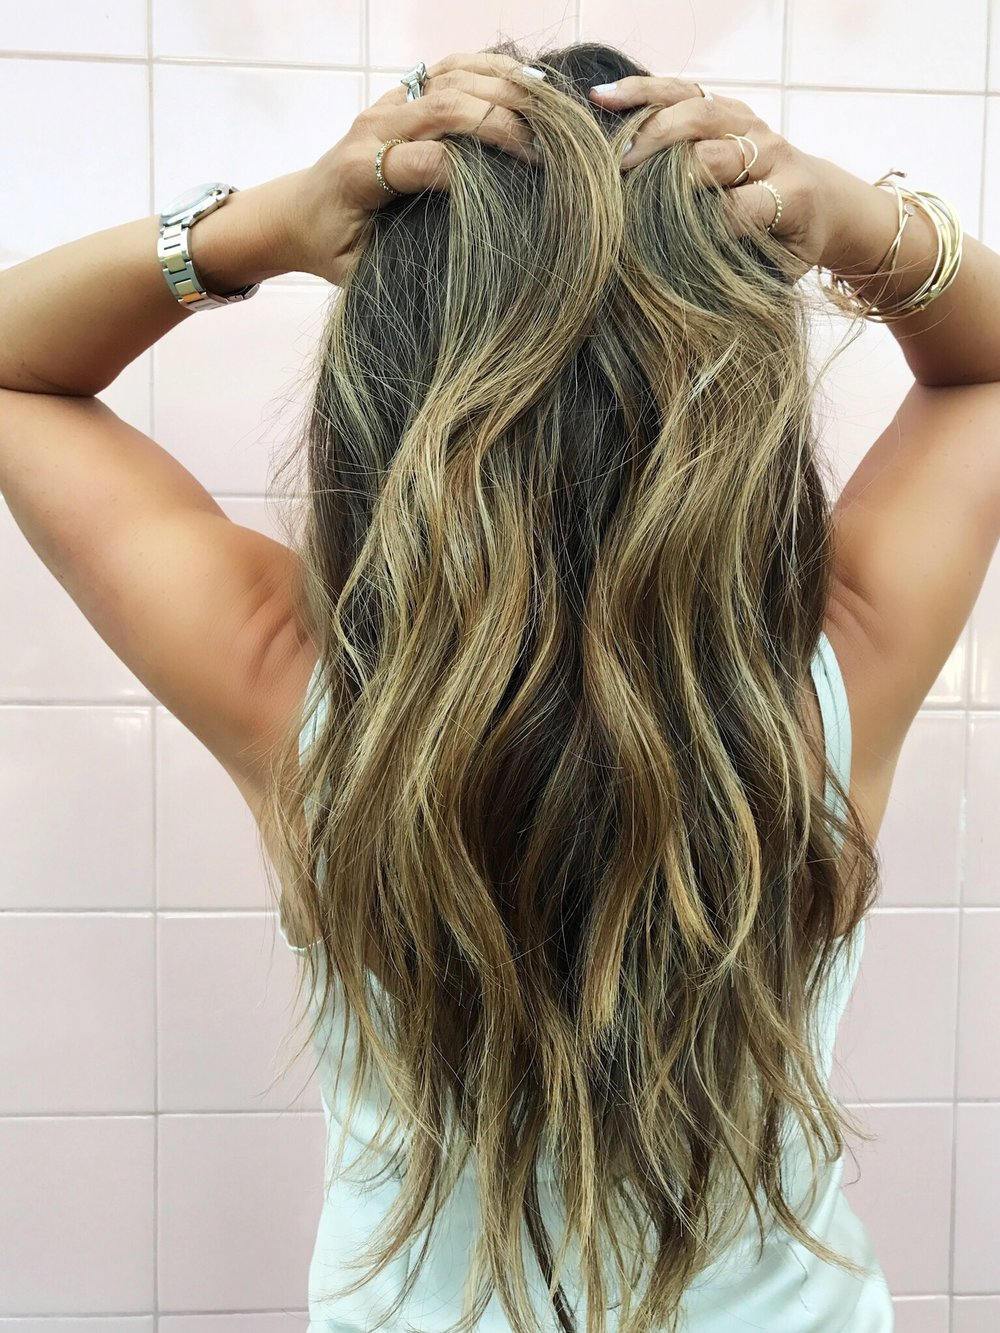 Best Products to Treat Dry, Damaged Hair — Melissa Meyers